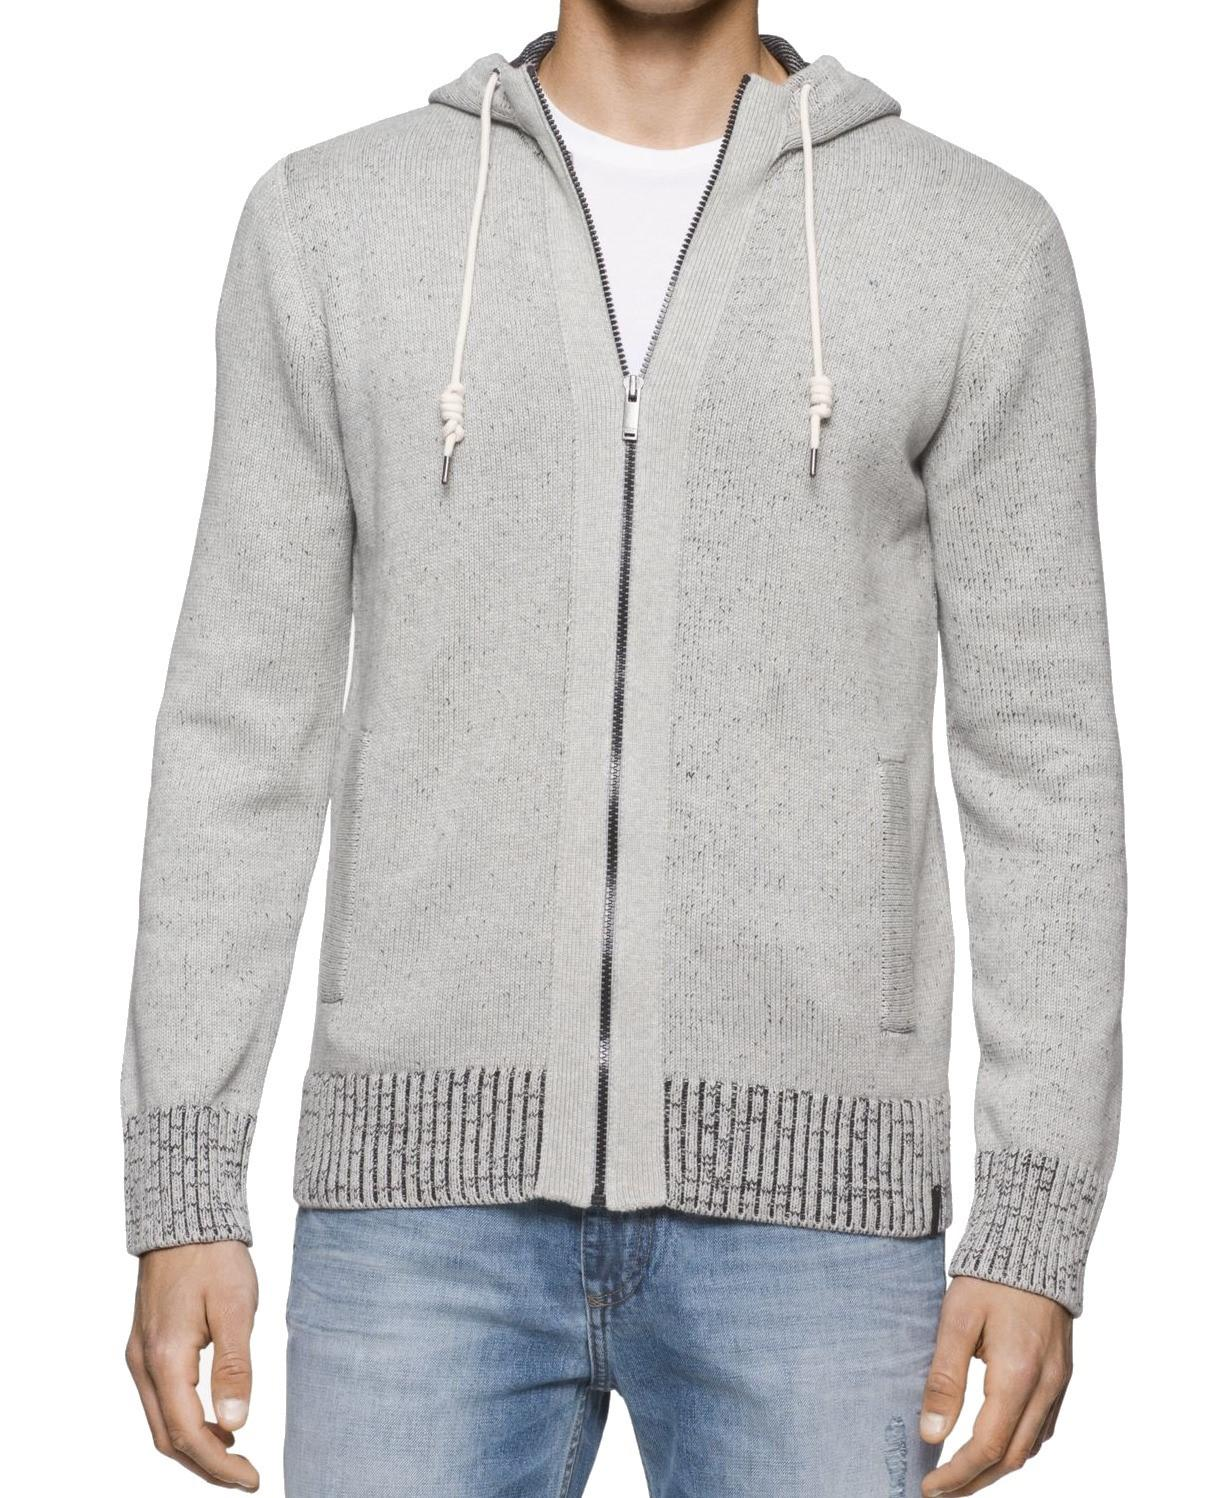 Calvin klein jeans Gray Mens Size Large L Full-zip Hooded Sweater ...